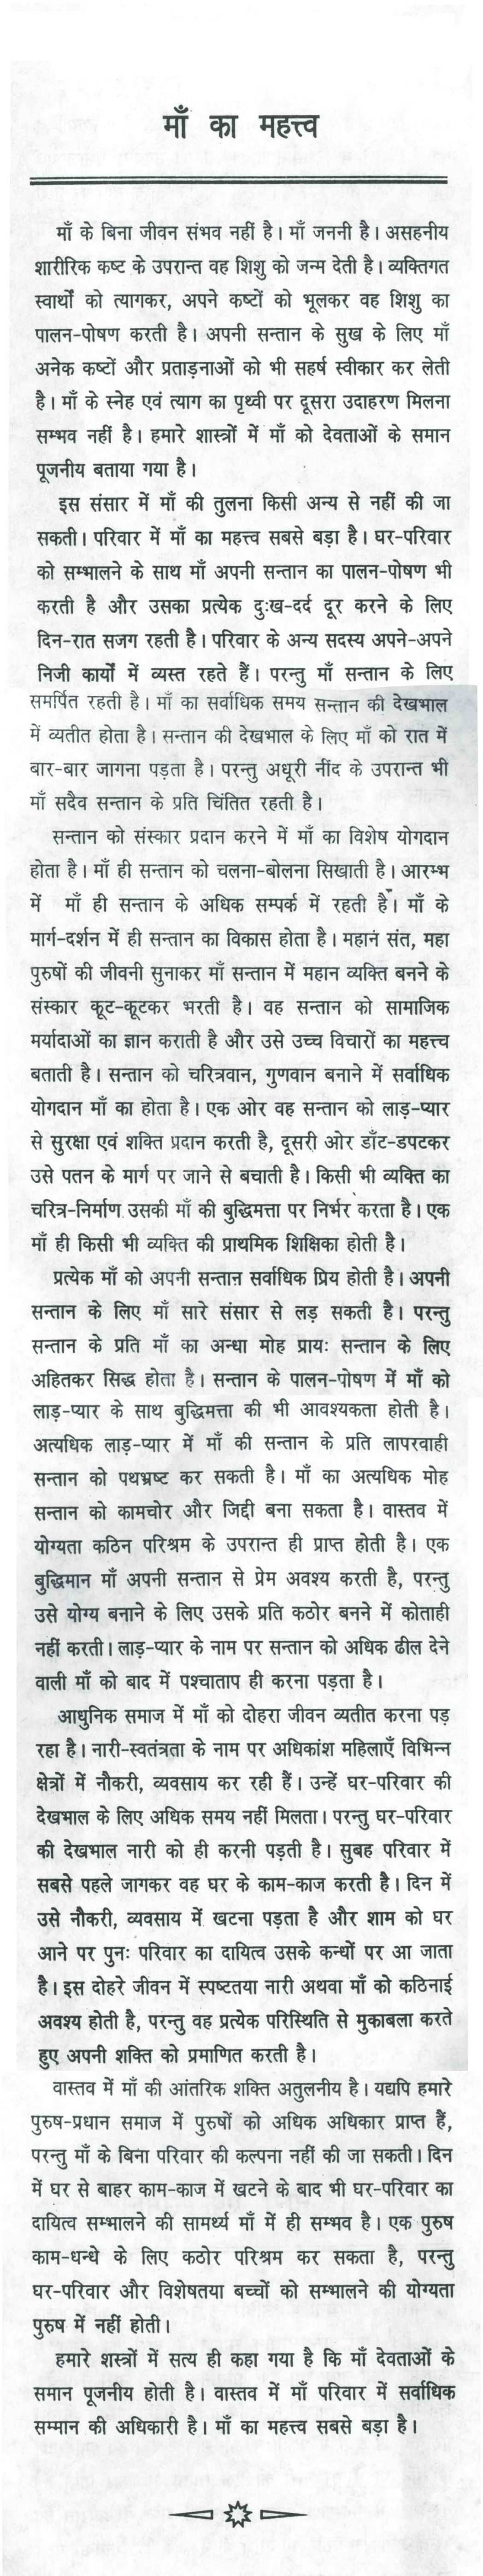 018 My Friend Essay About Helping Short Writing Books Are Best 10058 Th On In Hindi English Teacher Is Mother For Class Example 1048x5588 Excellent A Trouble Narrative